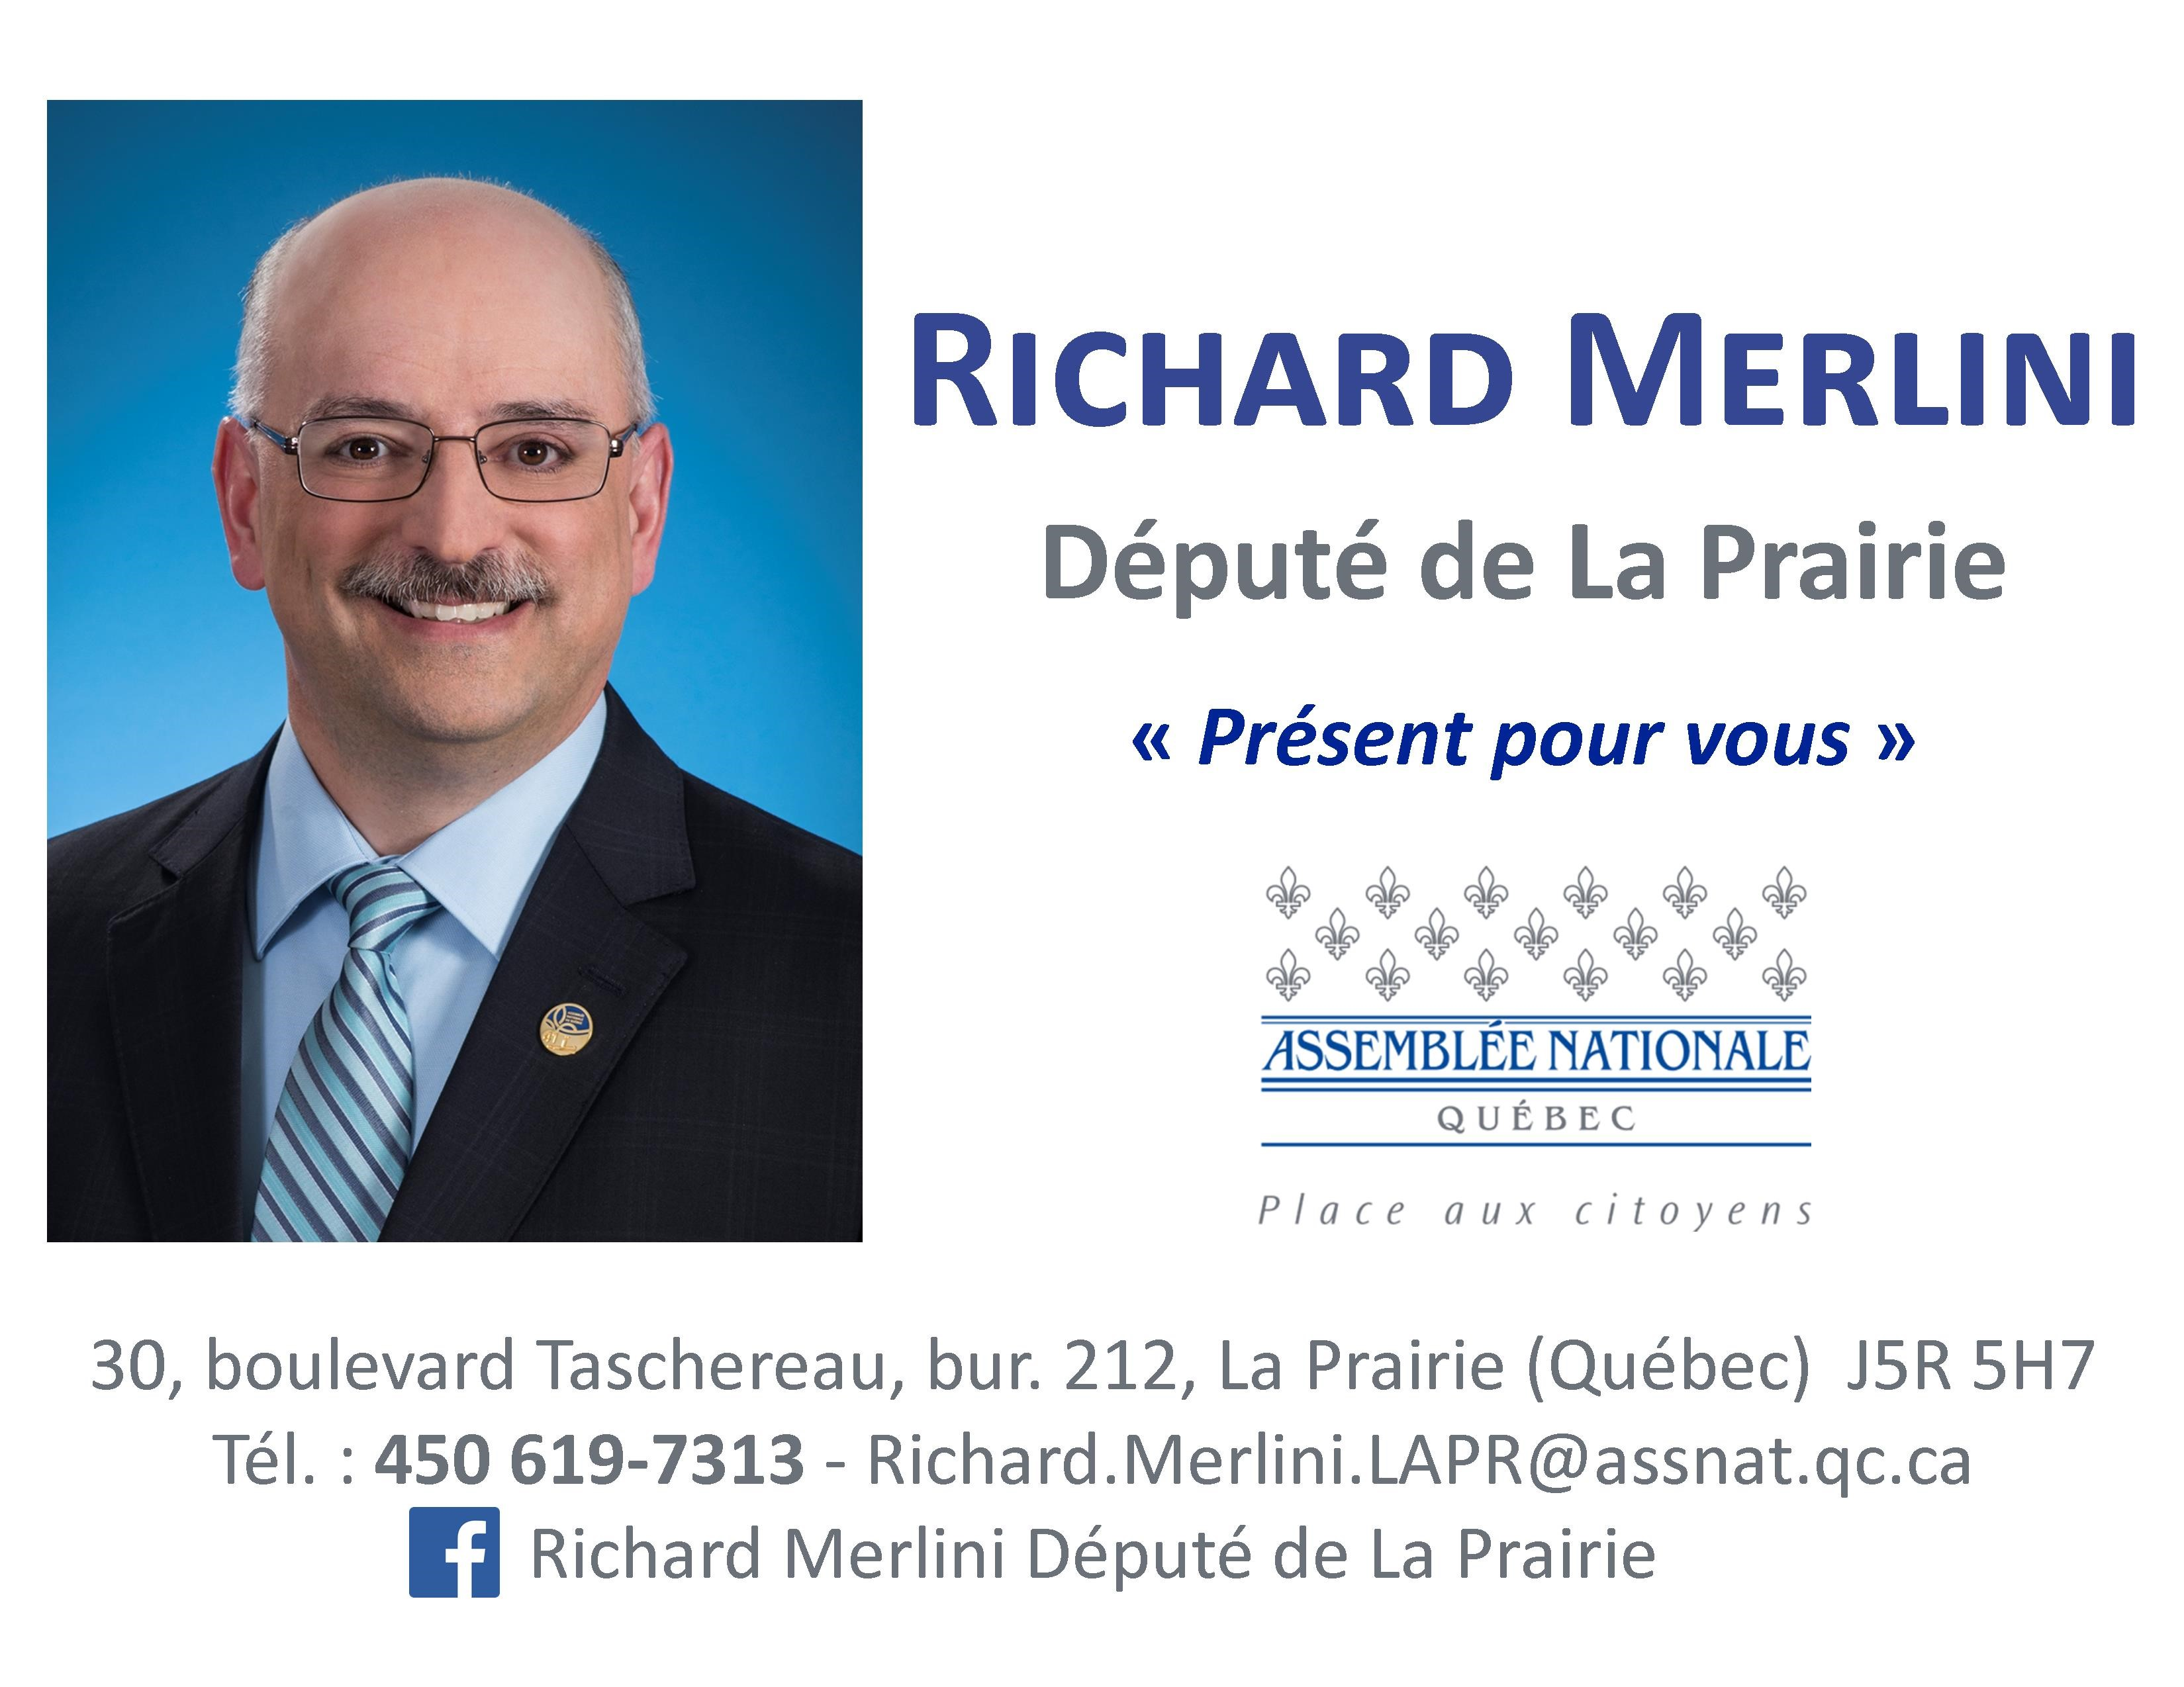 Richard Merlini, Député de La Prairie